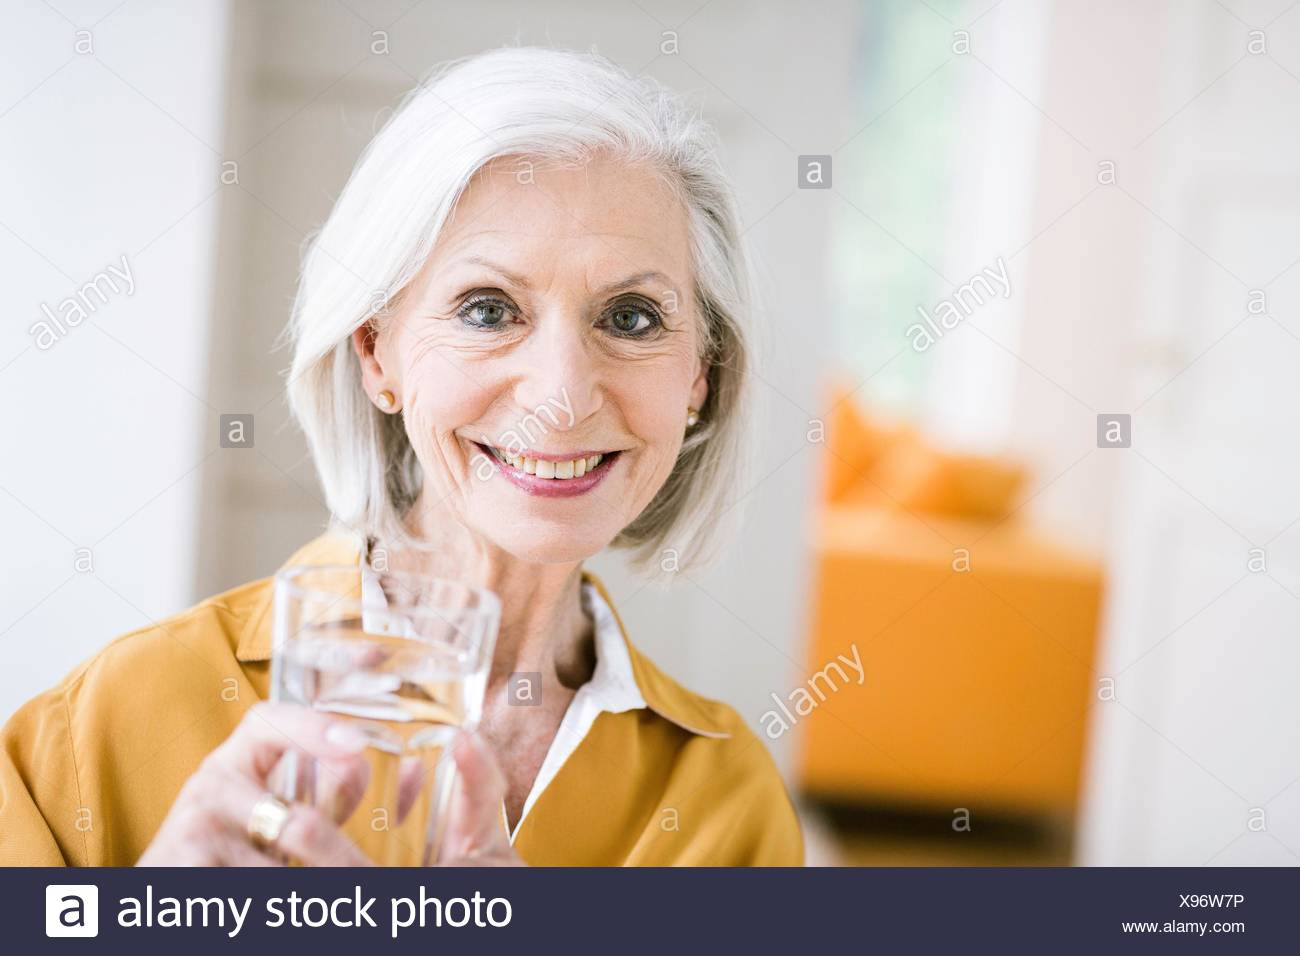 Portrait of senior woman holding tumbler of water looking at camera smiling - Stock Image